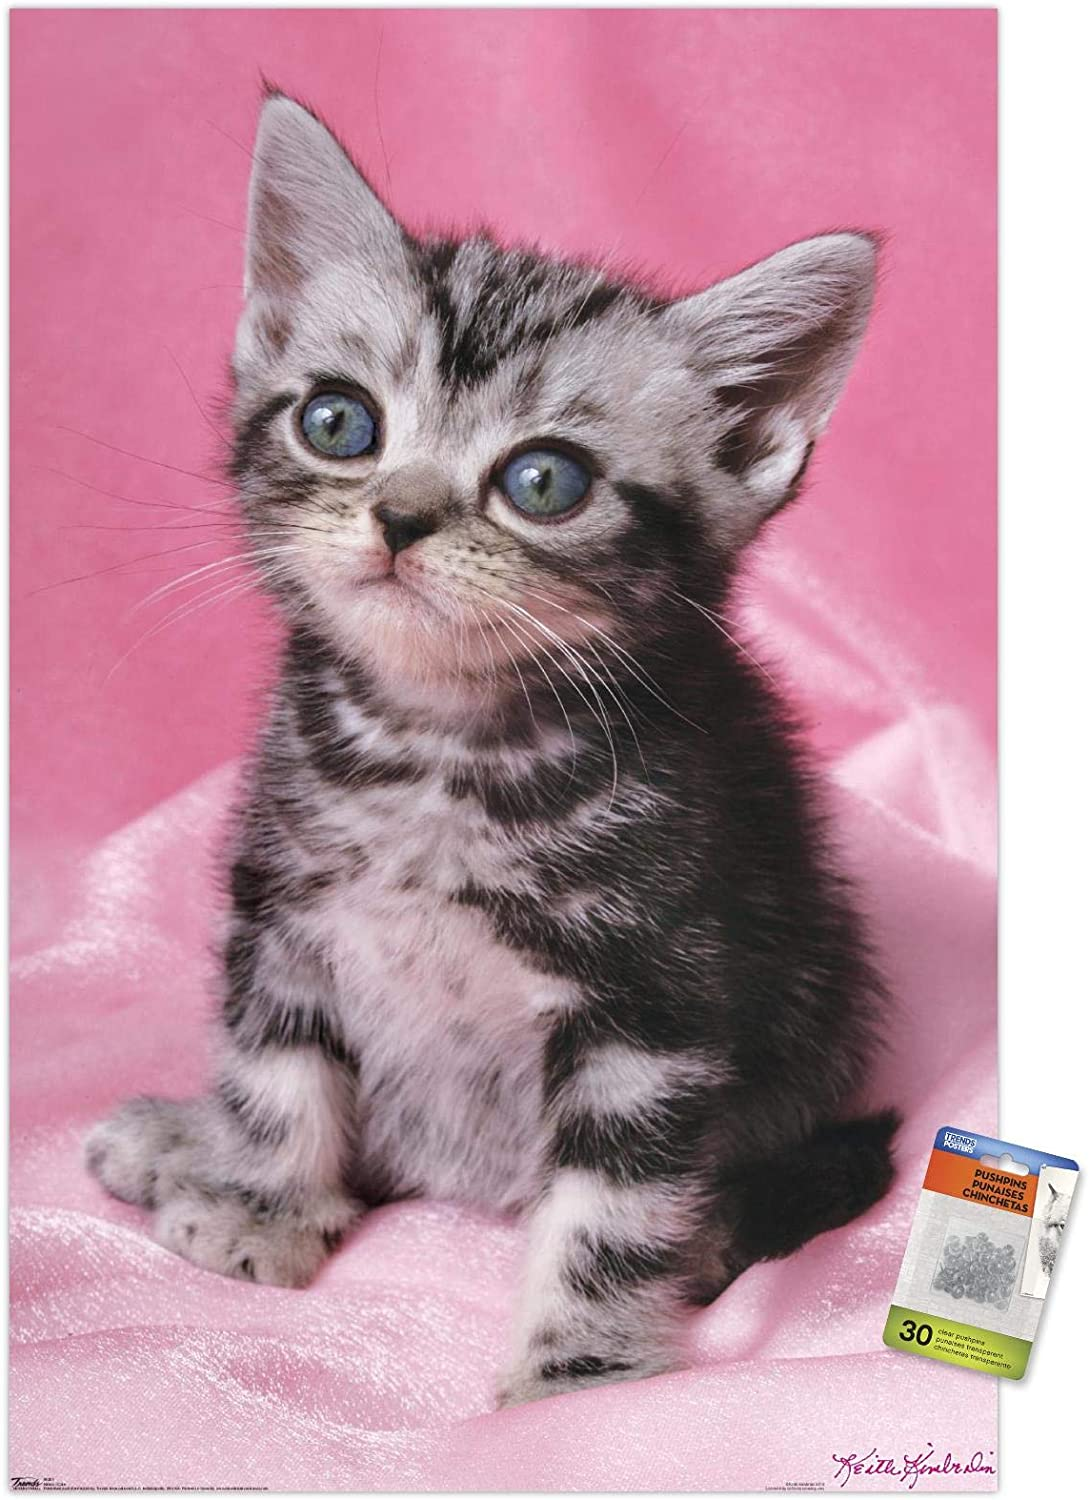 Keith Kimberlin - Kitten - Cute Wall Poster with Push Pins